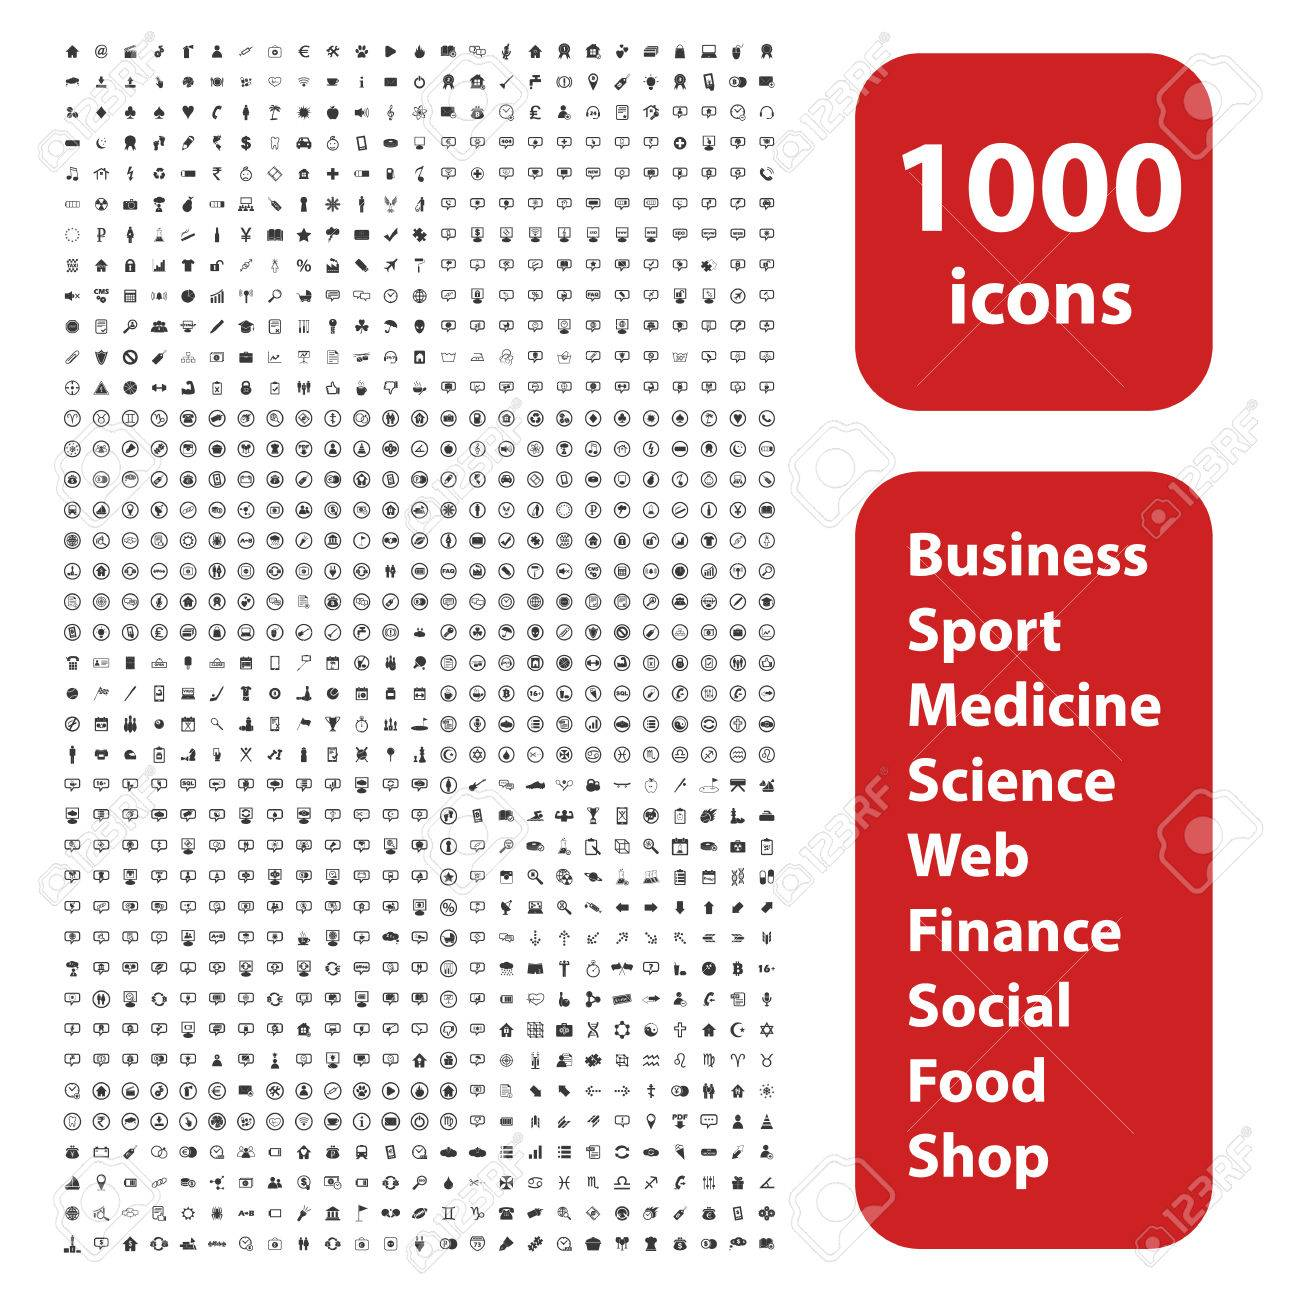 1000 icons set, different black signs and symbols on white background - 45632611